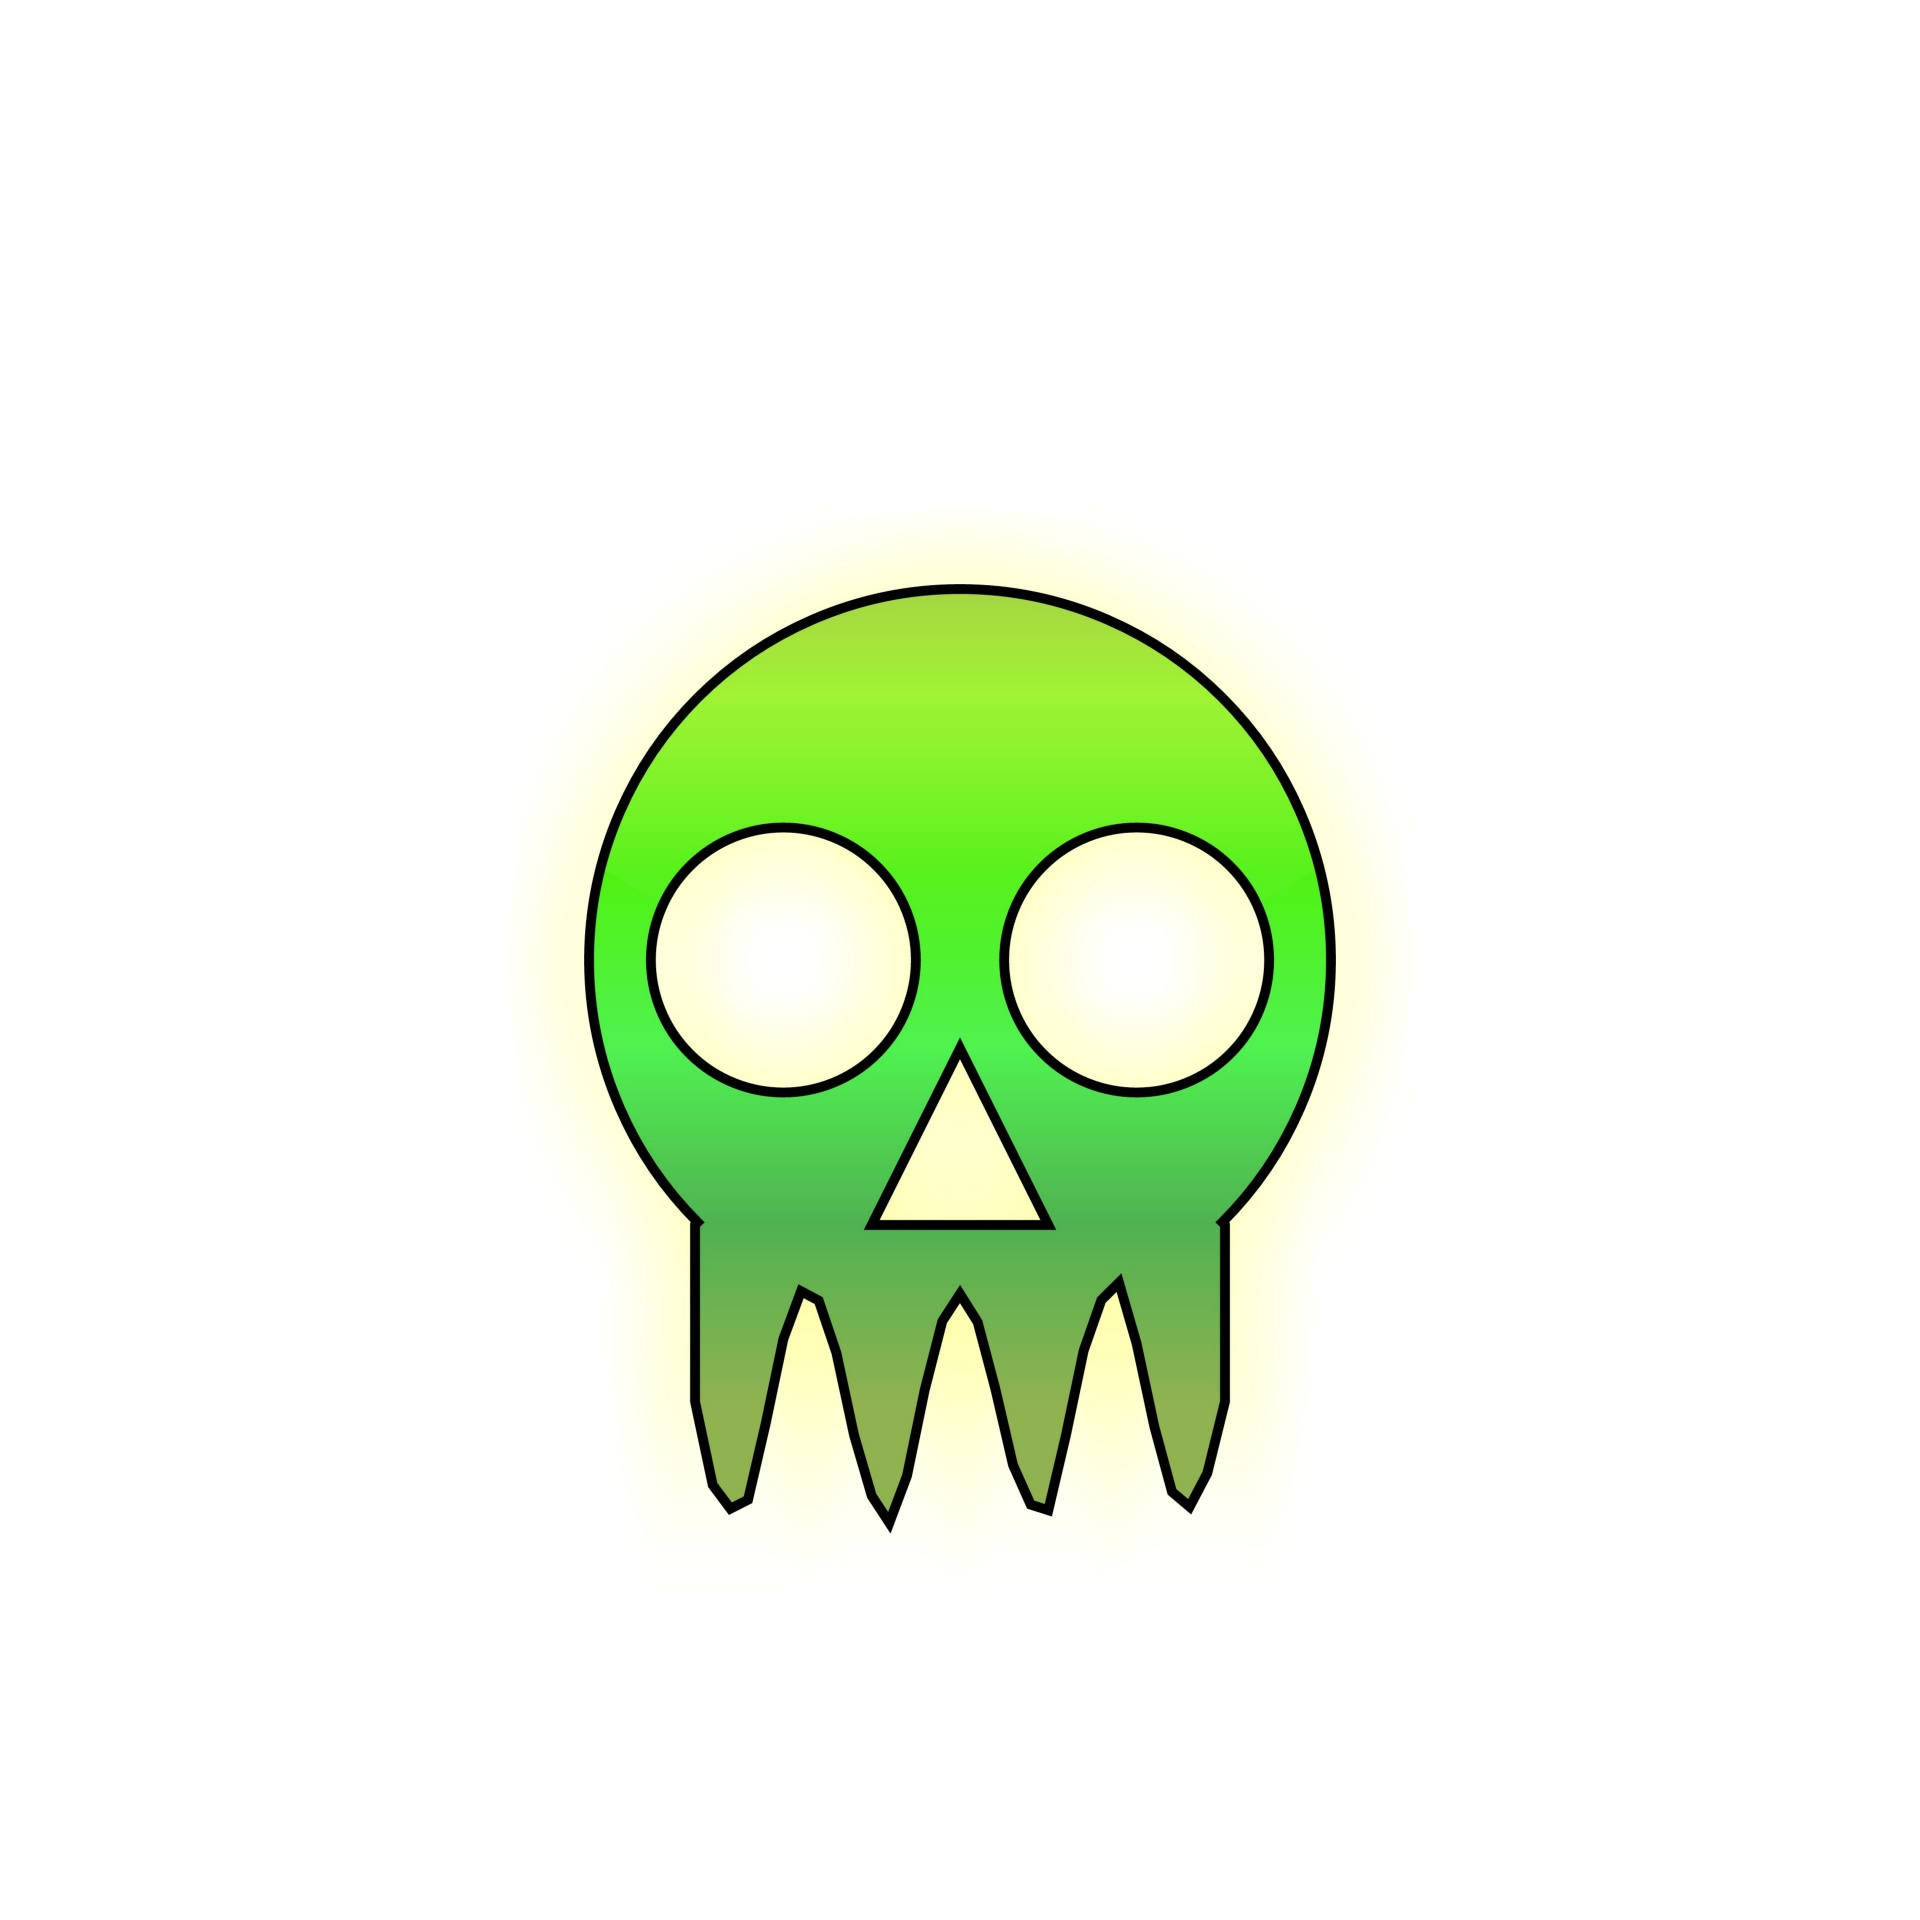 1920x1920 Skull, Drawing, Green, Gradient, Scary